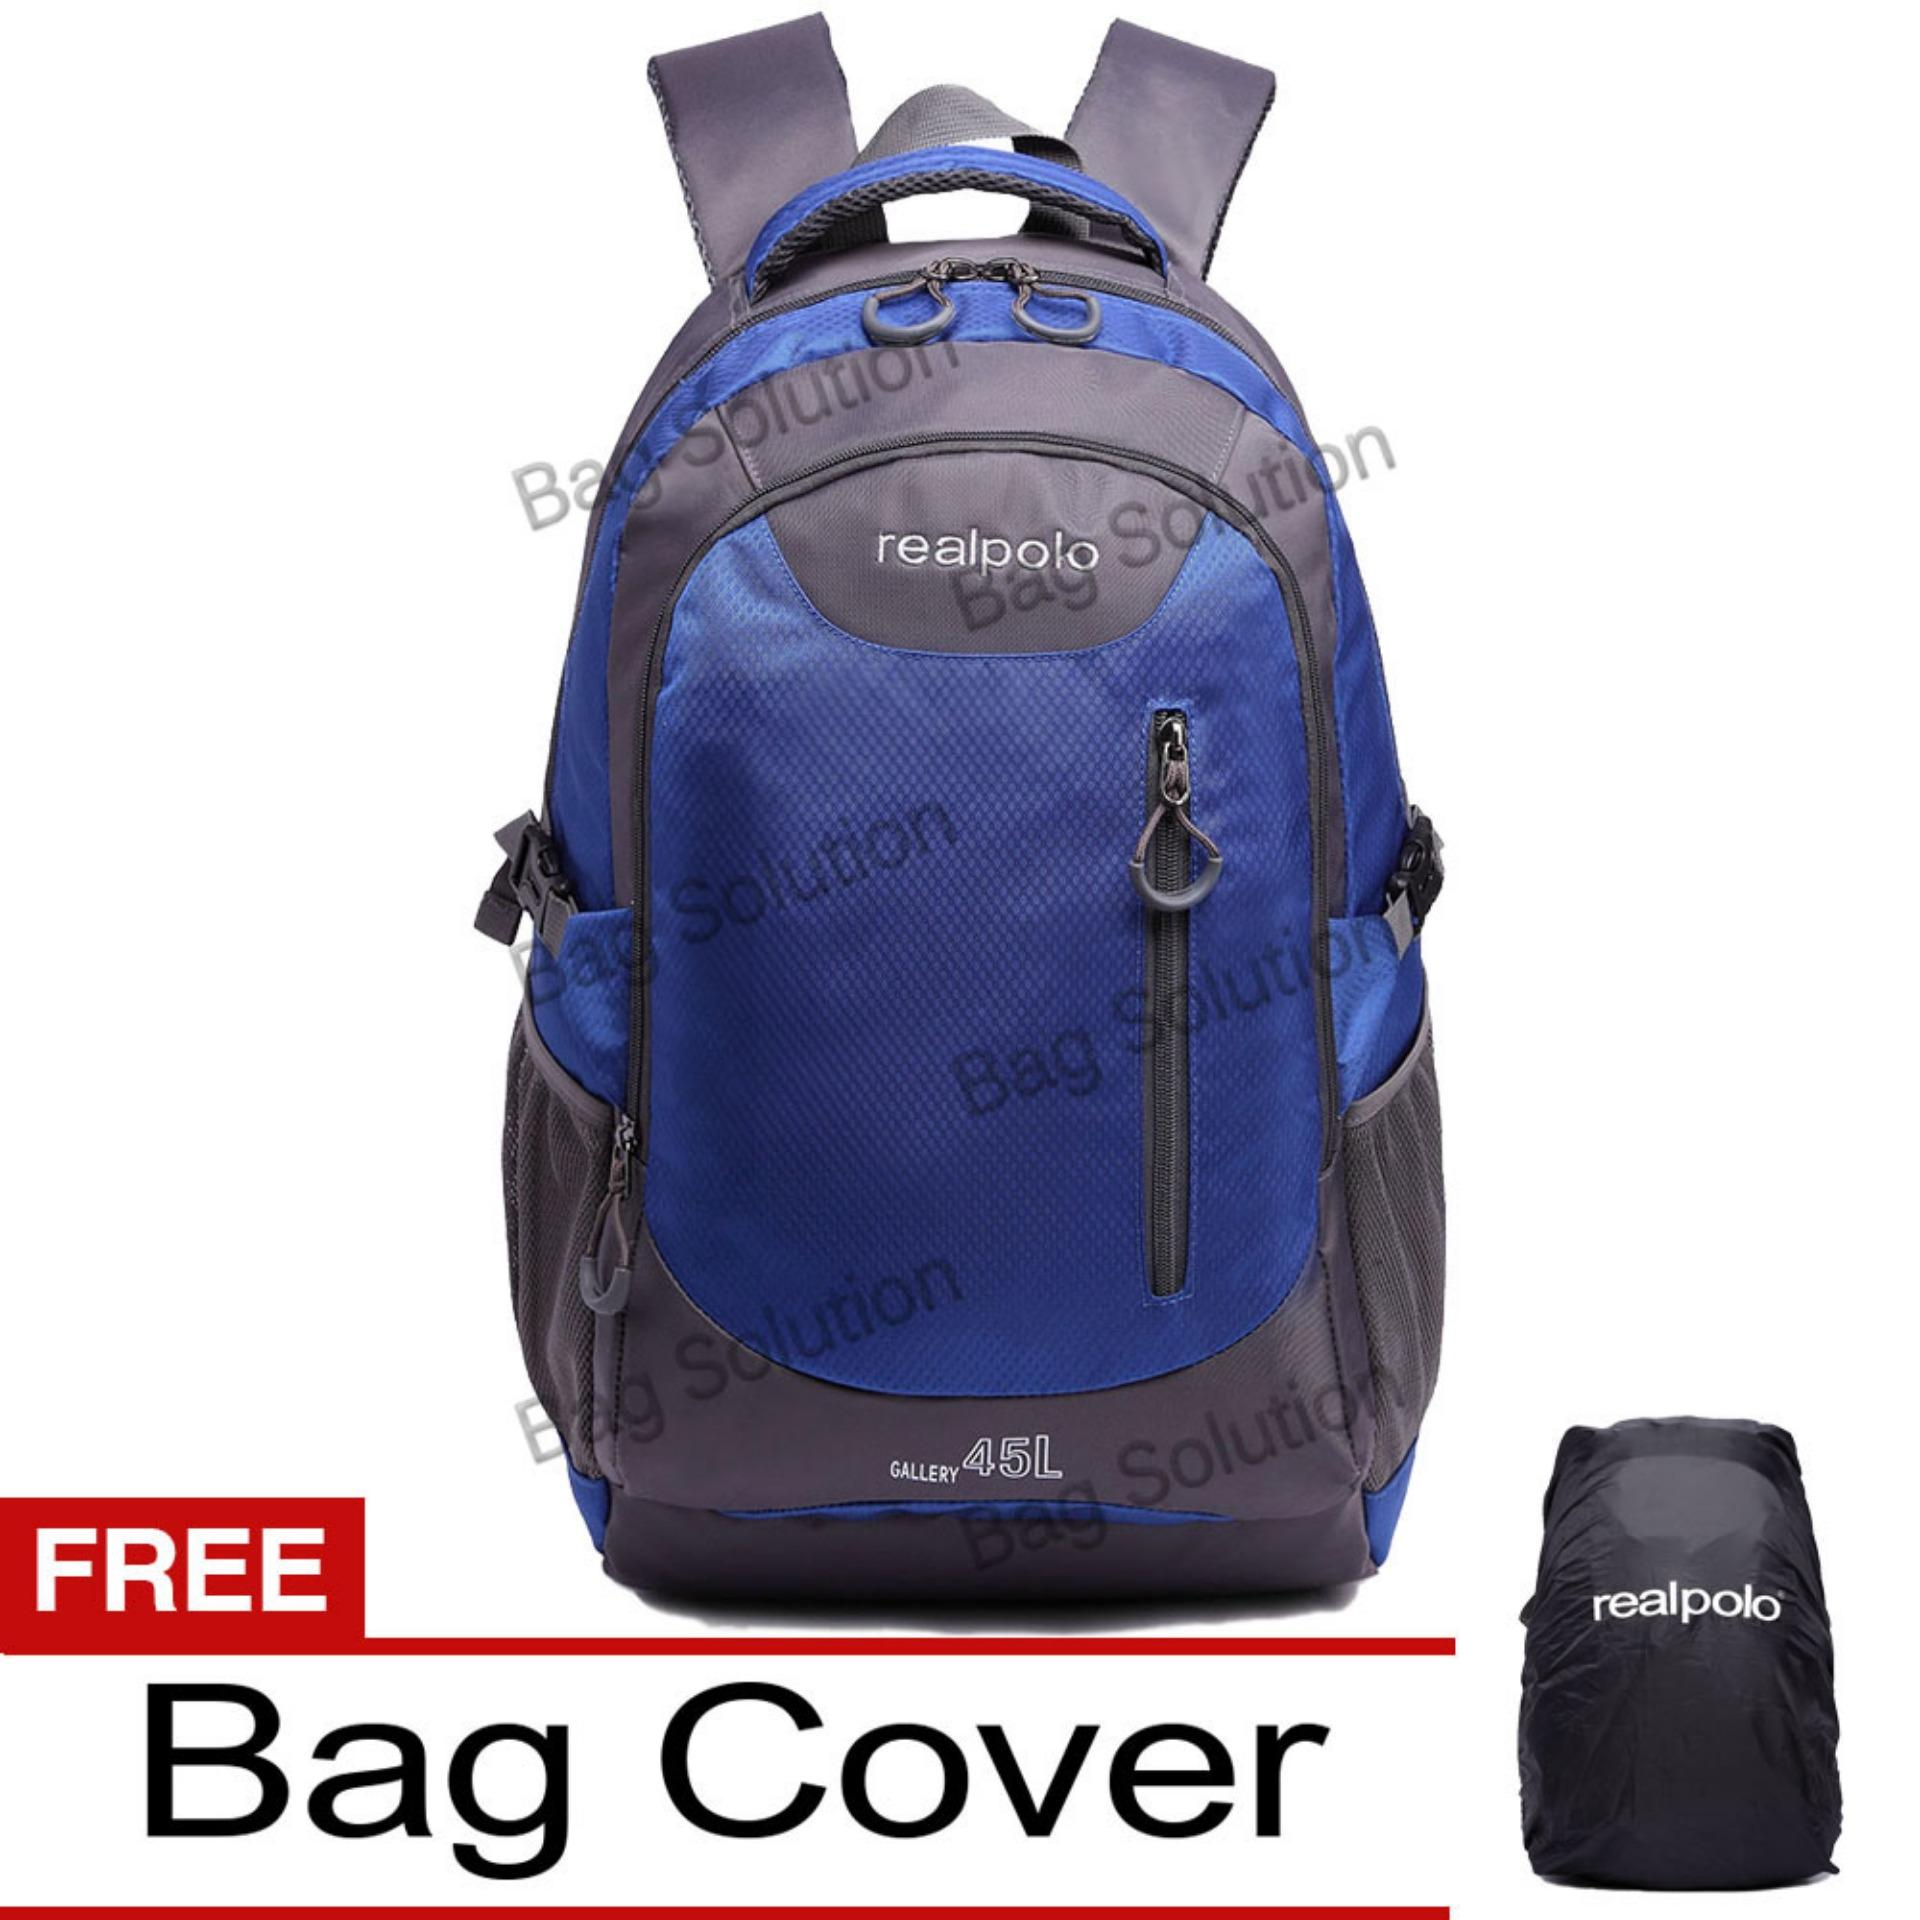 Jual Real Polo Tas Ransel Kasual Jumbo 6333 Backpack Xl Bonus Bag Cover Biru